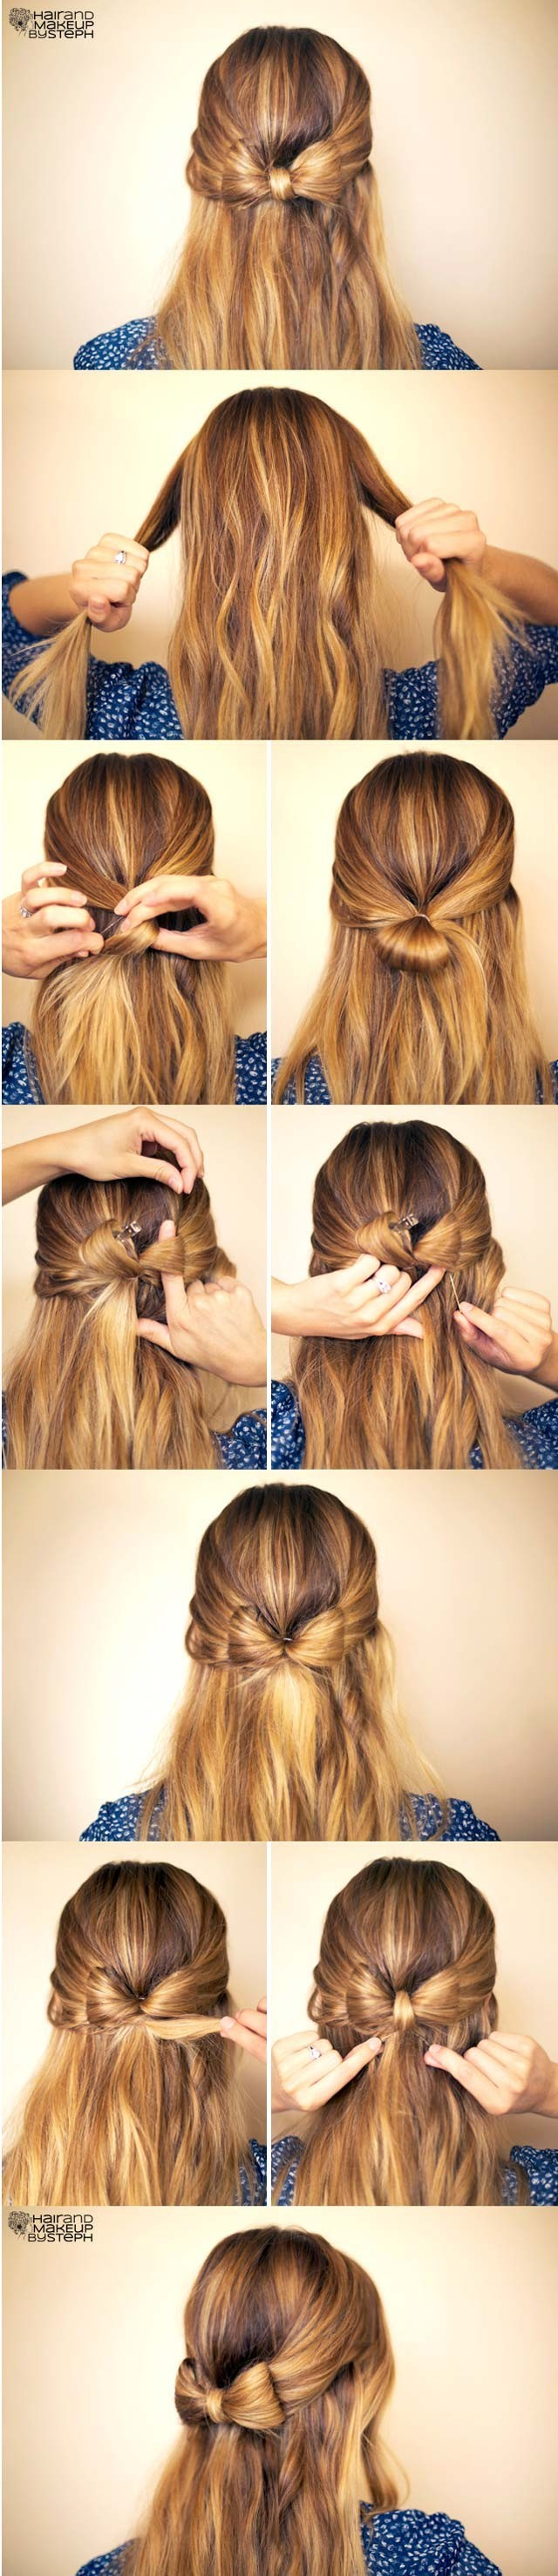 Surprising 15 Cute Hairstyles Step By Step Hairstyles For Long Hair Short Hairstyles Gunalazisus